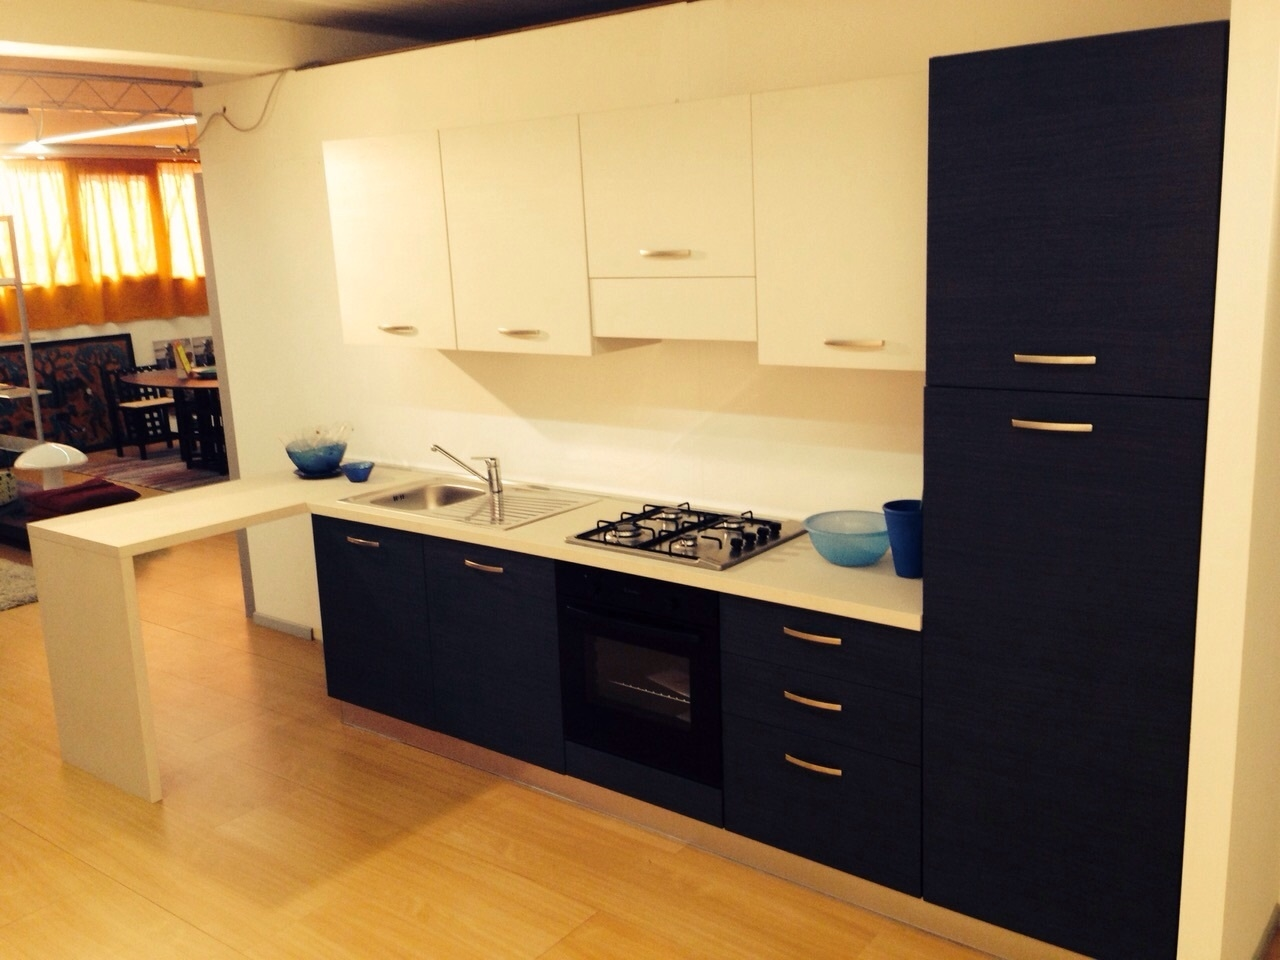 www.outletarredamento.it/img/cucine/cucina-outlet-...